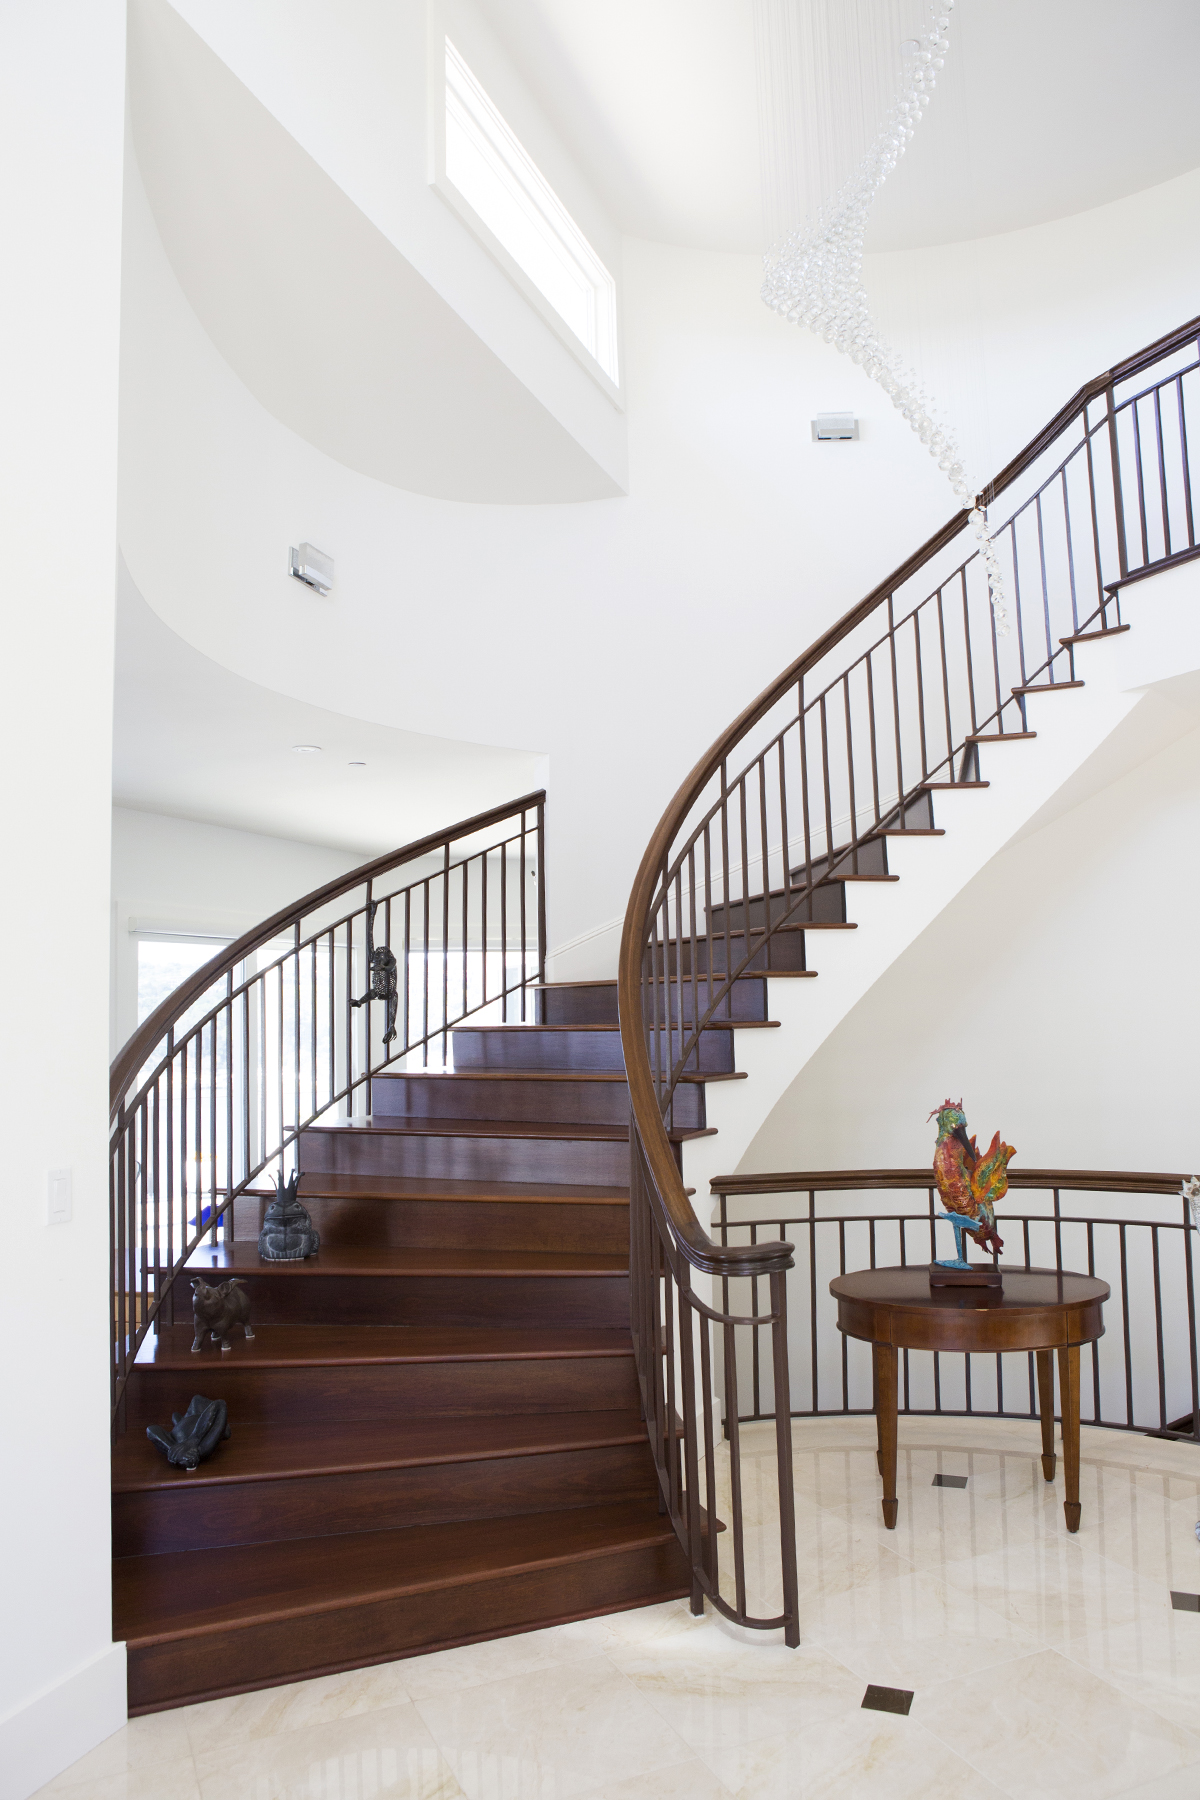 stairs full length 4x6.jpg